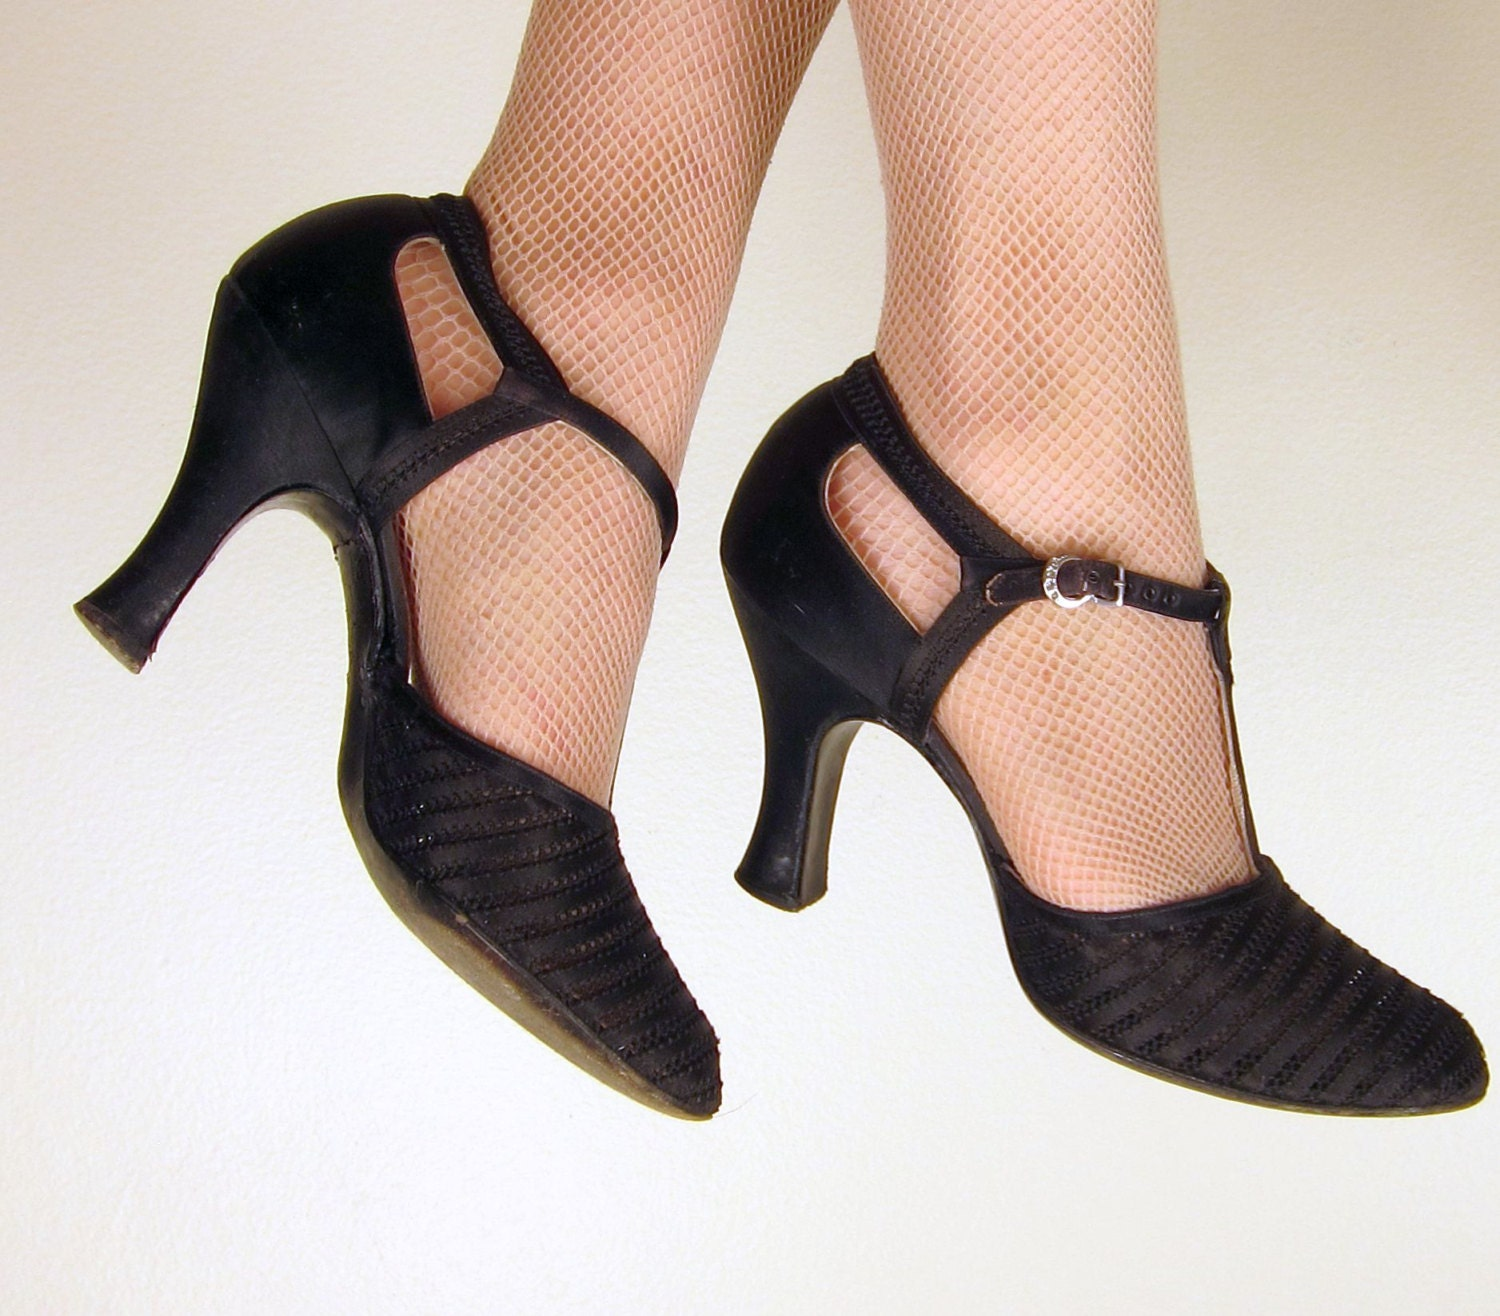 Vintage 1920s Black T Strap Shoes 20s Mary Jane Heels In